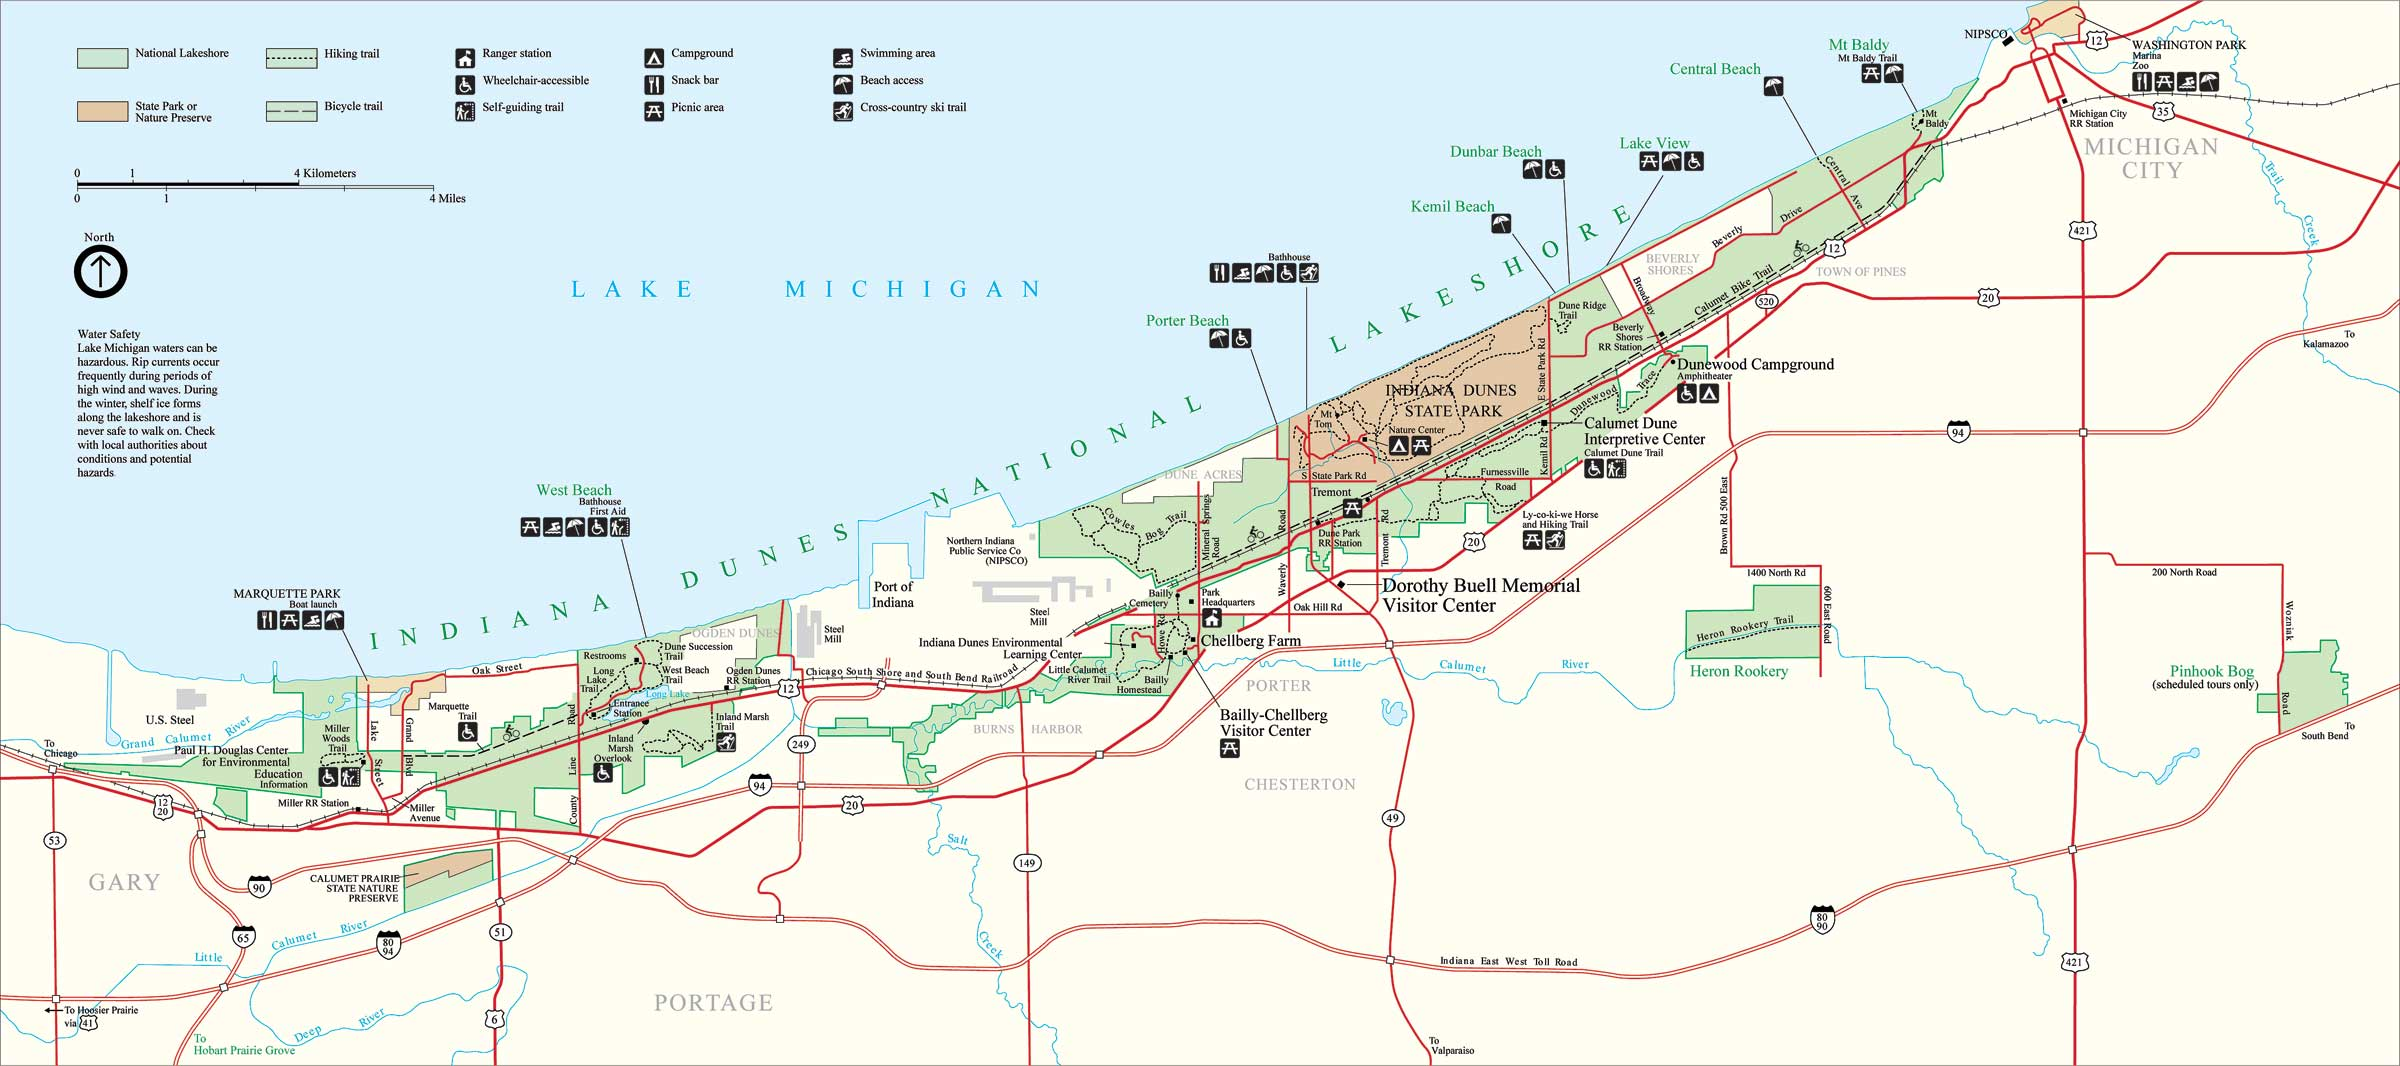 Indiana Dunes National Park Map Michigan City Indiana USA Mappery - Indiana map of usa